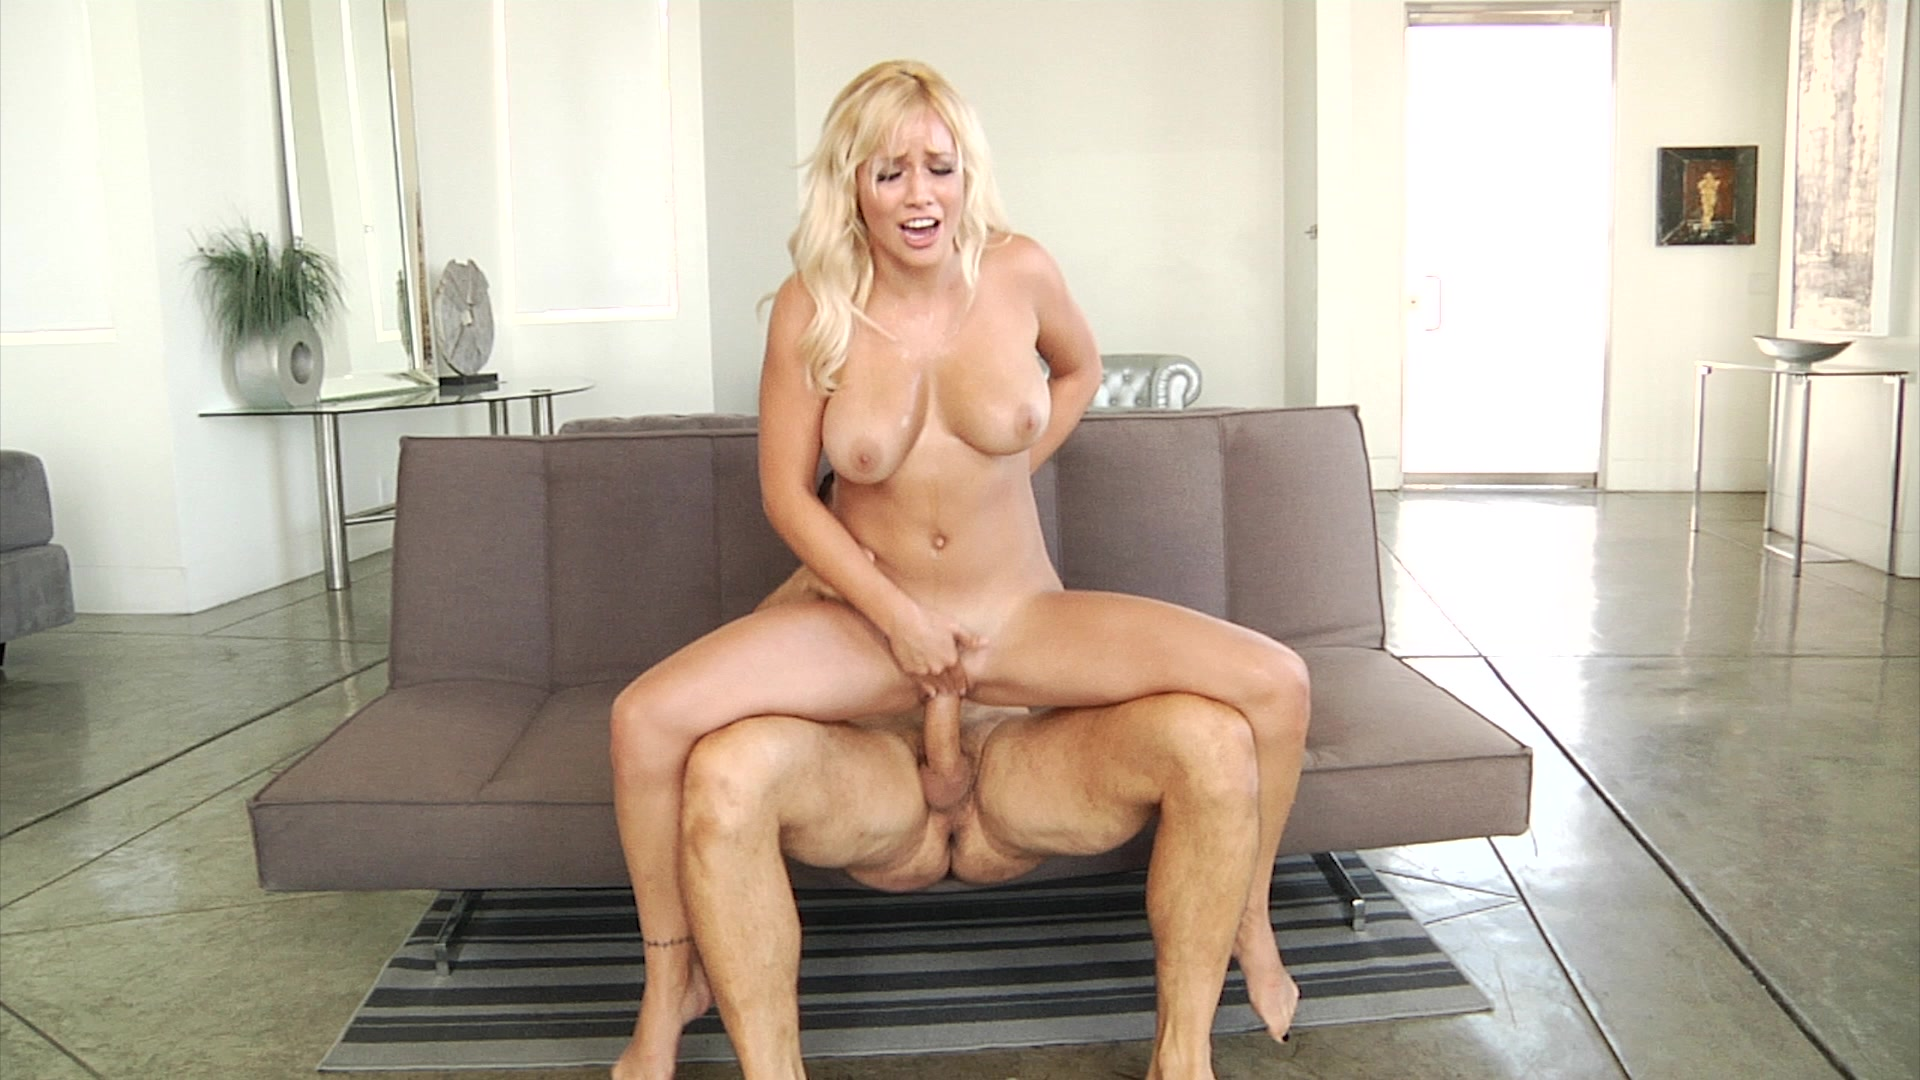 Kylie milf humiliation — pic 1